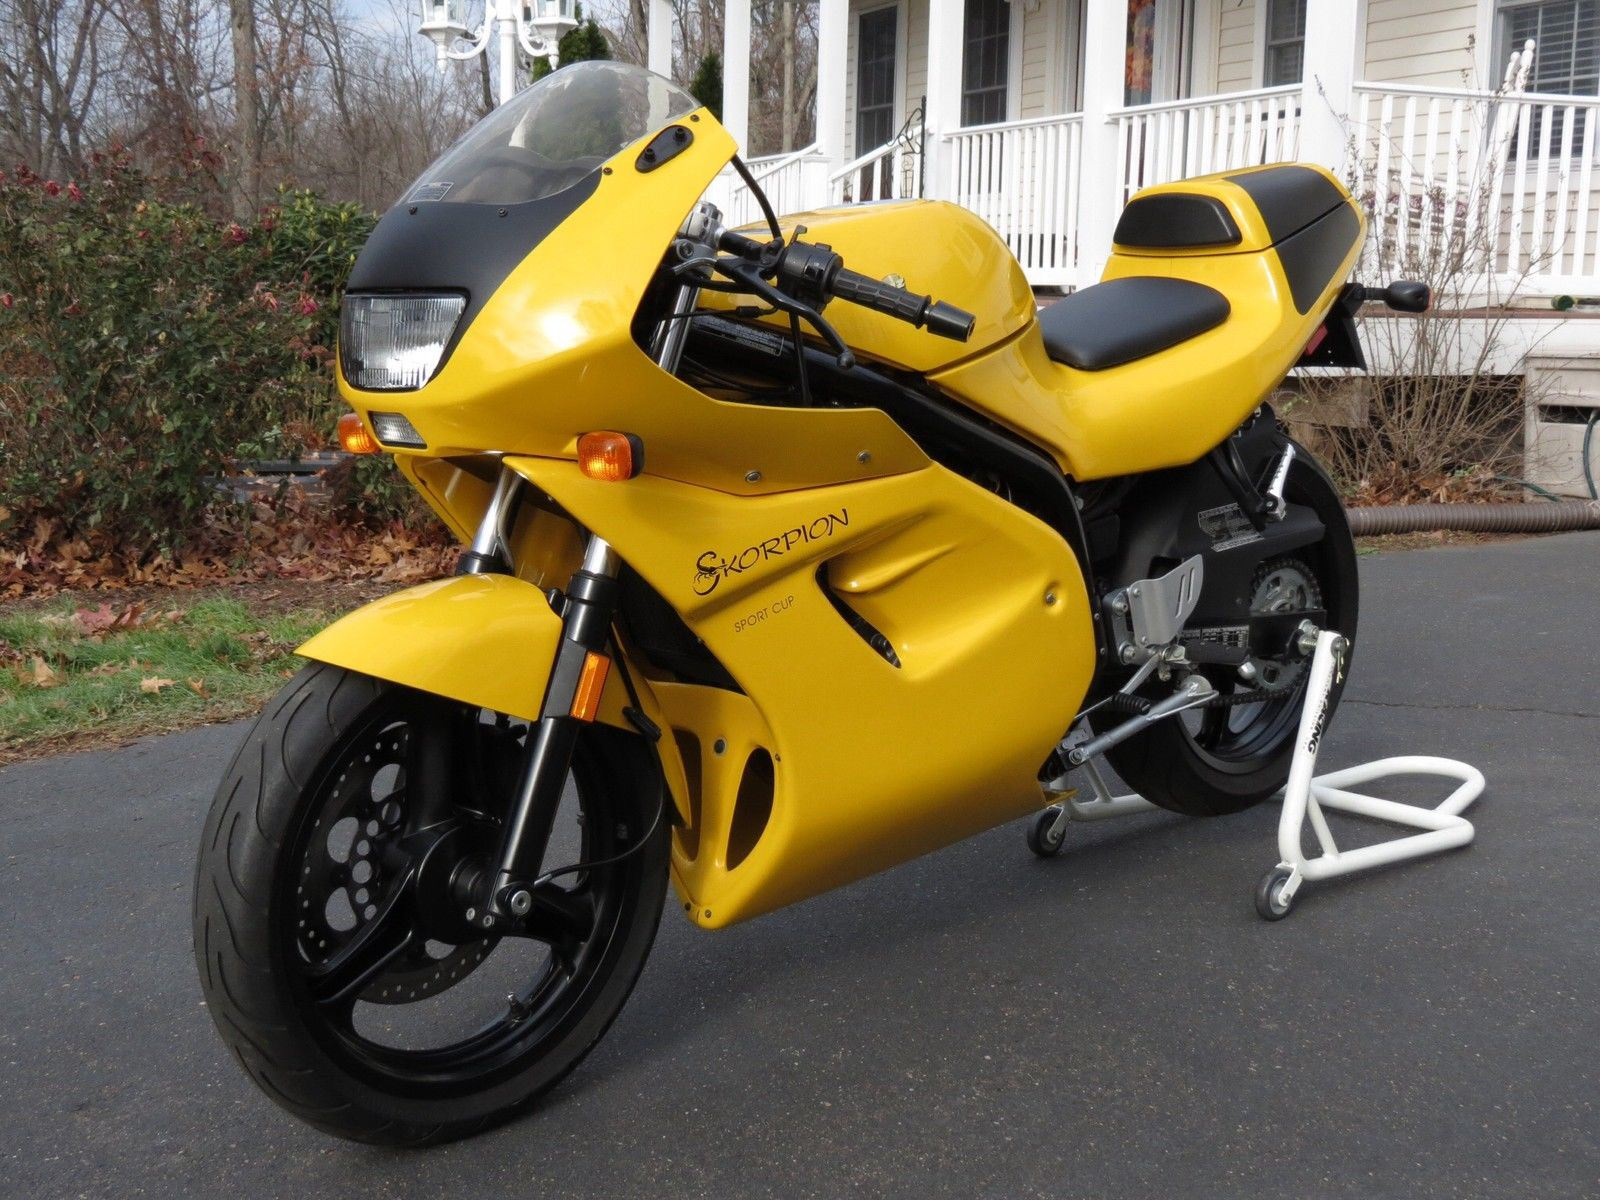 MZ Skorpion 660 Sport 2001 images #157968